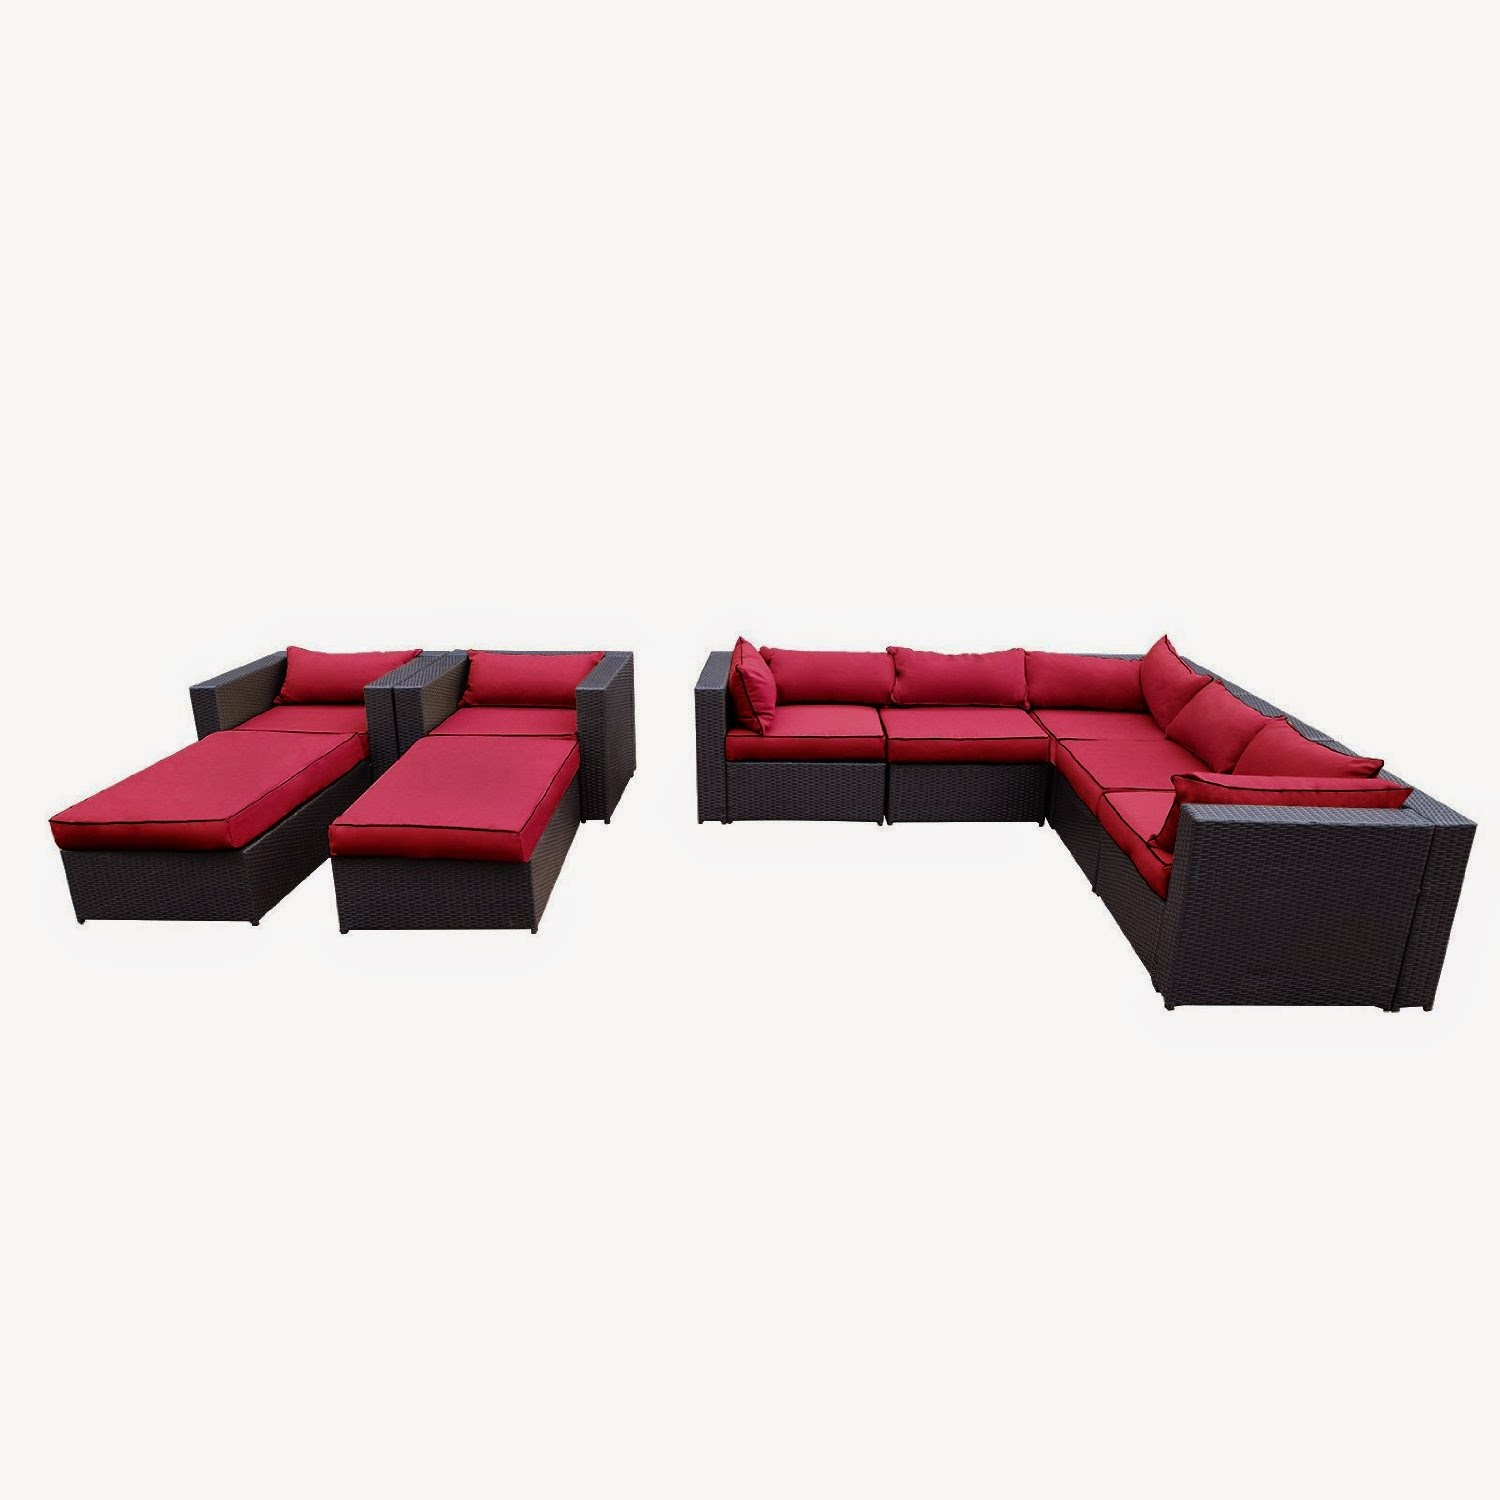 Outdoor Patio Rattan Wicker Furniture Sectional Sofa Garden Furniture Set (Red)